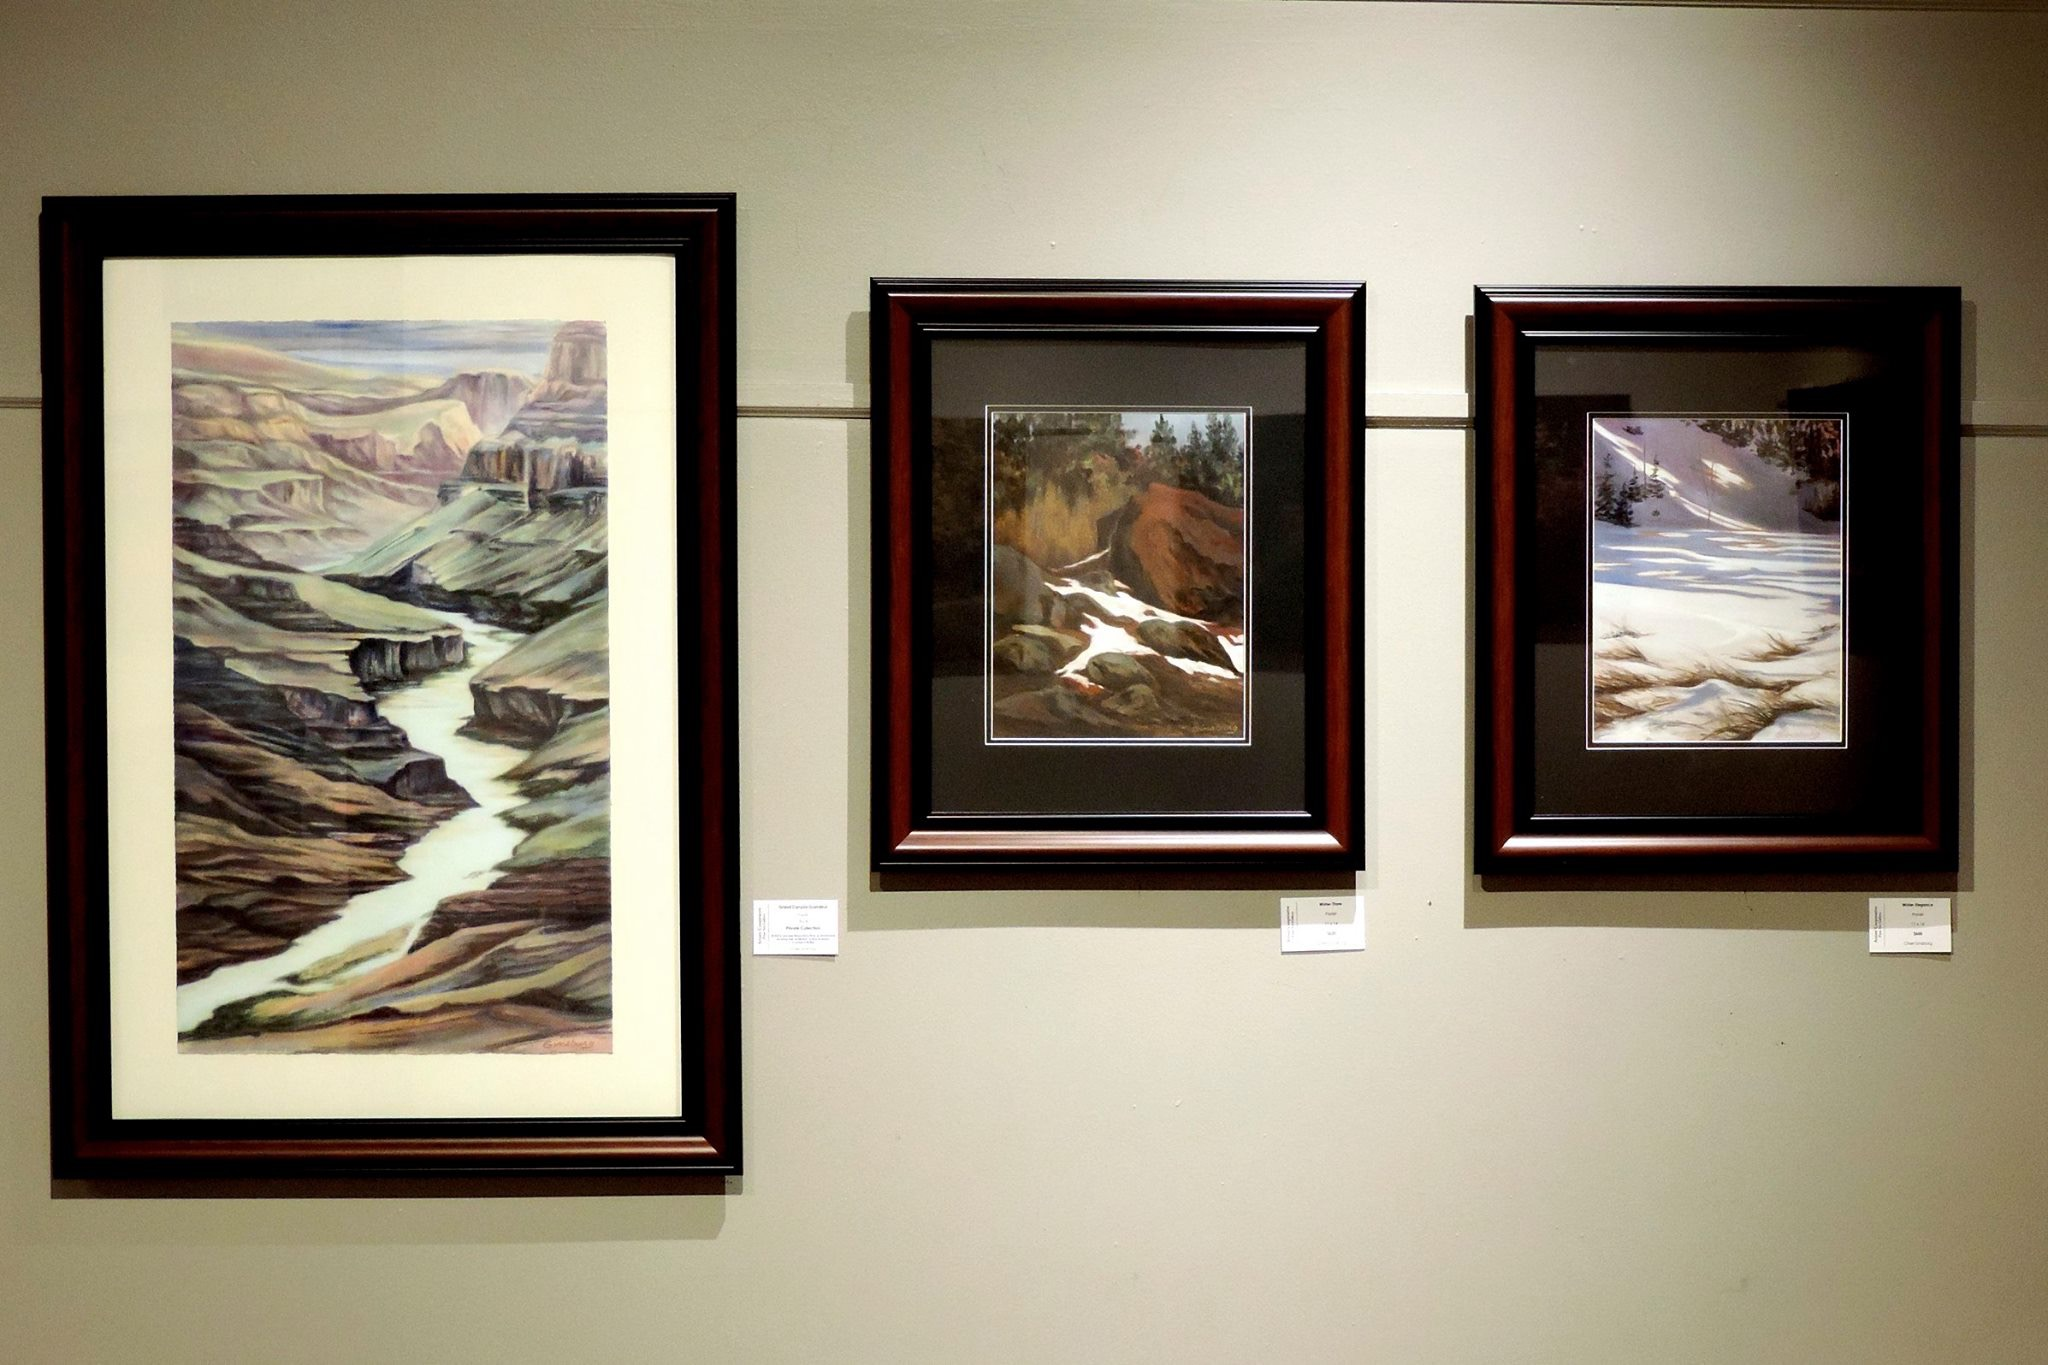 """""""Grand Canyon GRANDEUR"""", """"WINTER THAW"""", AND """"WINTER ELEGANCE""""  Beautiful hung together... Cheri GInsburg ©"""